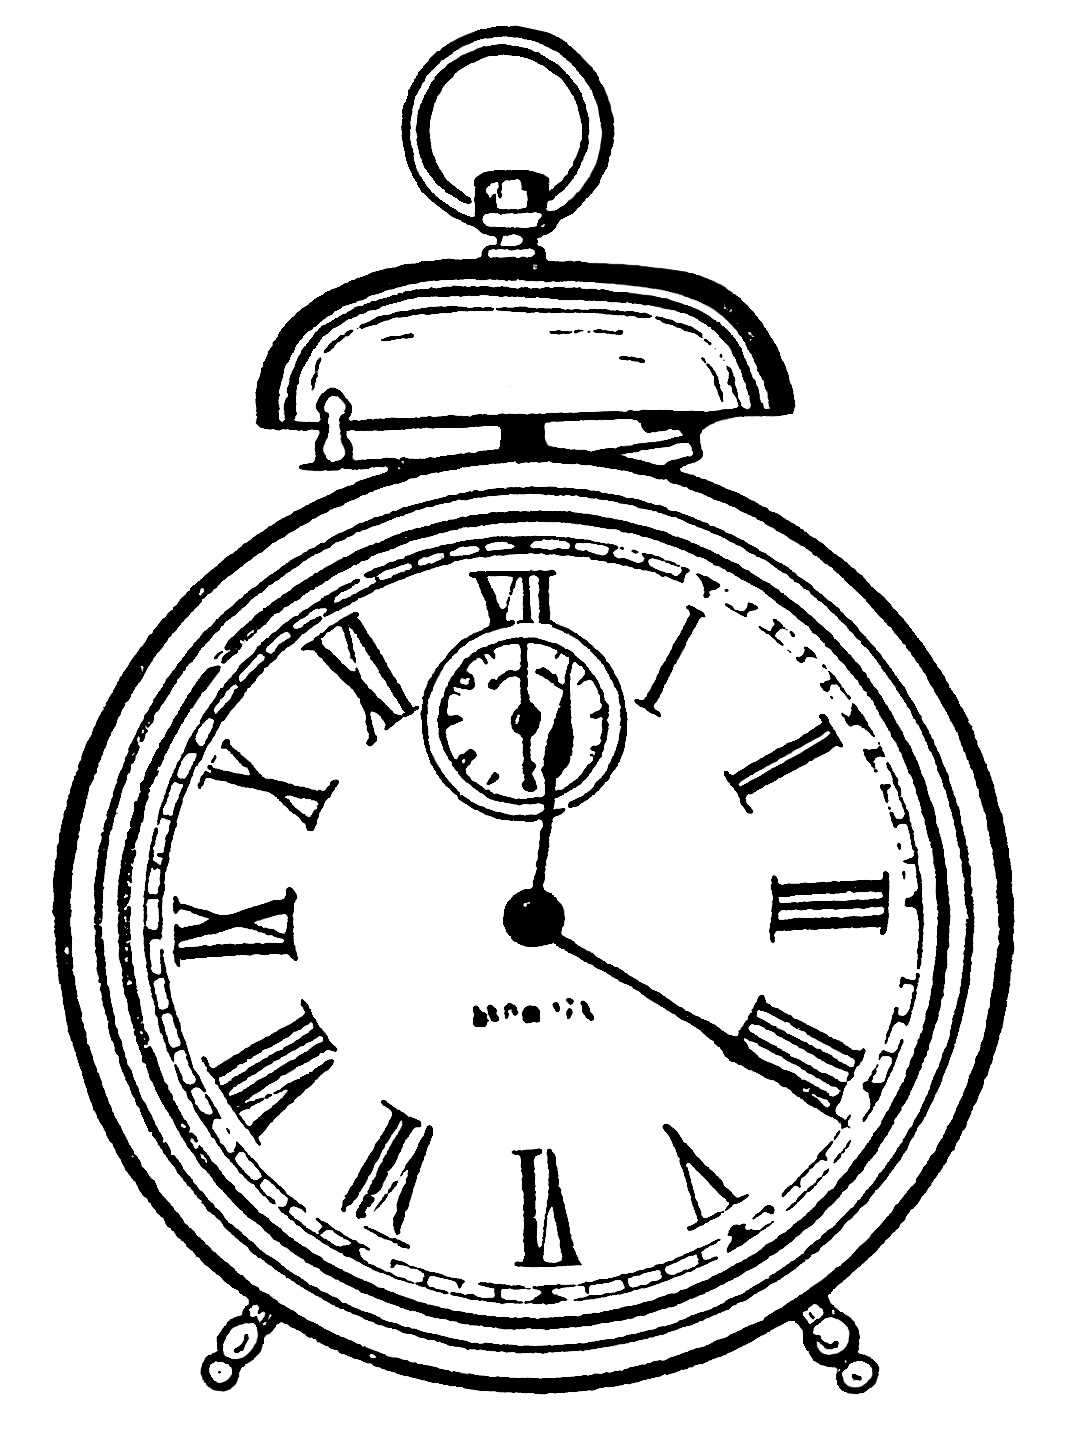 Alarm Clock Clipart Png Image Free Download Searchpng - Alarm Clock Clipart  Png , Free Transparent Clipart - ClipartKey